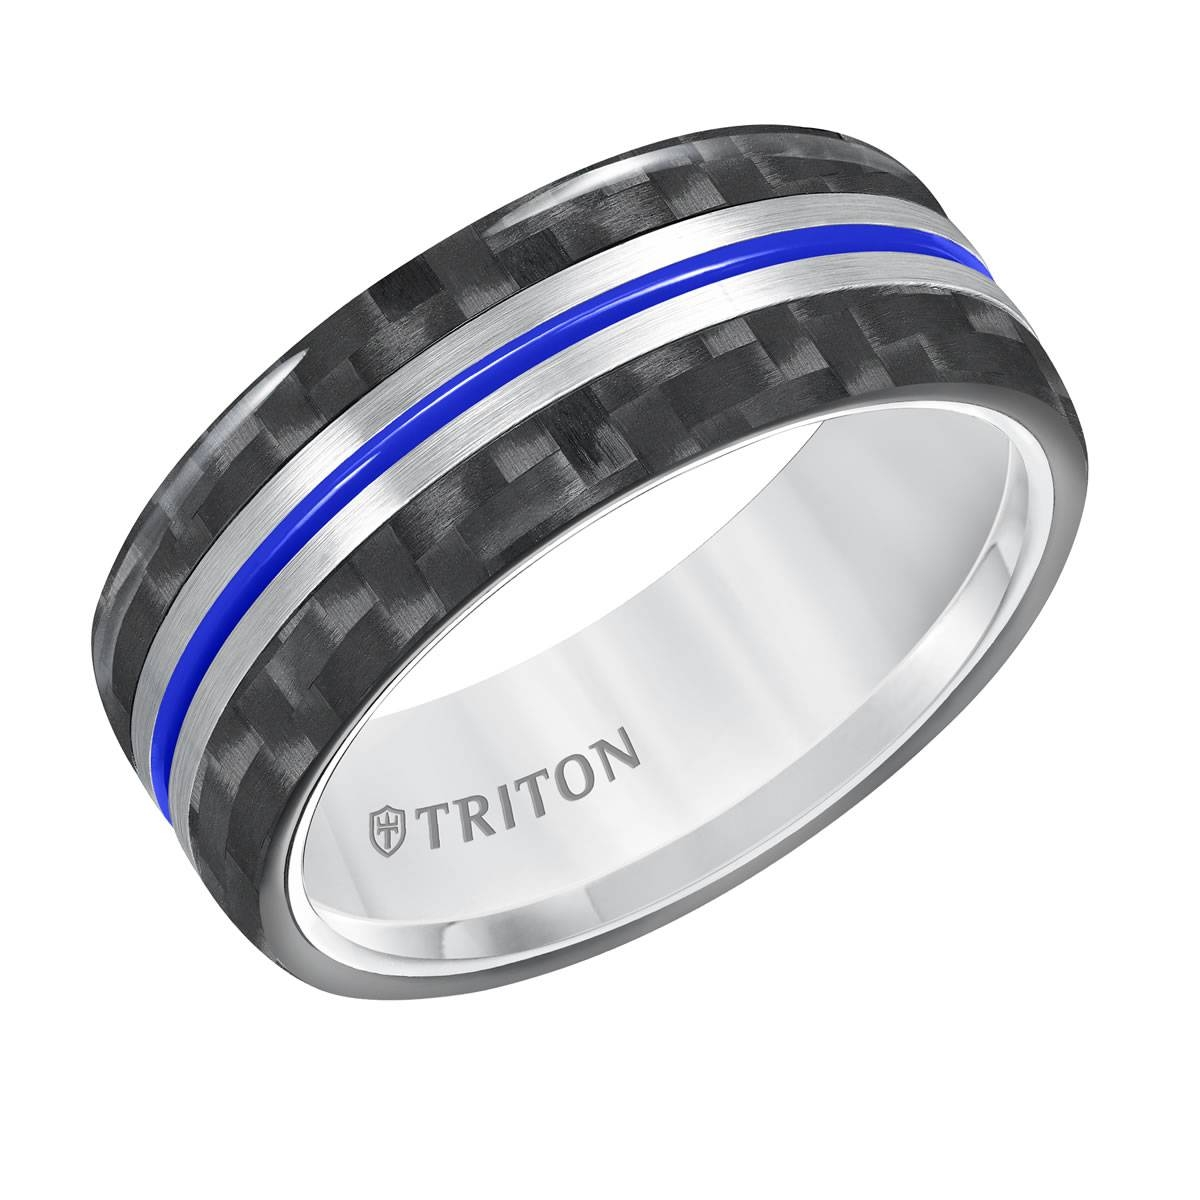 Triton 8Mm White Tungstenair Comfort Fit Men's Wedding Band With Throughout Carbon Wedding Bands (Gallery 1 of 15)